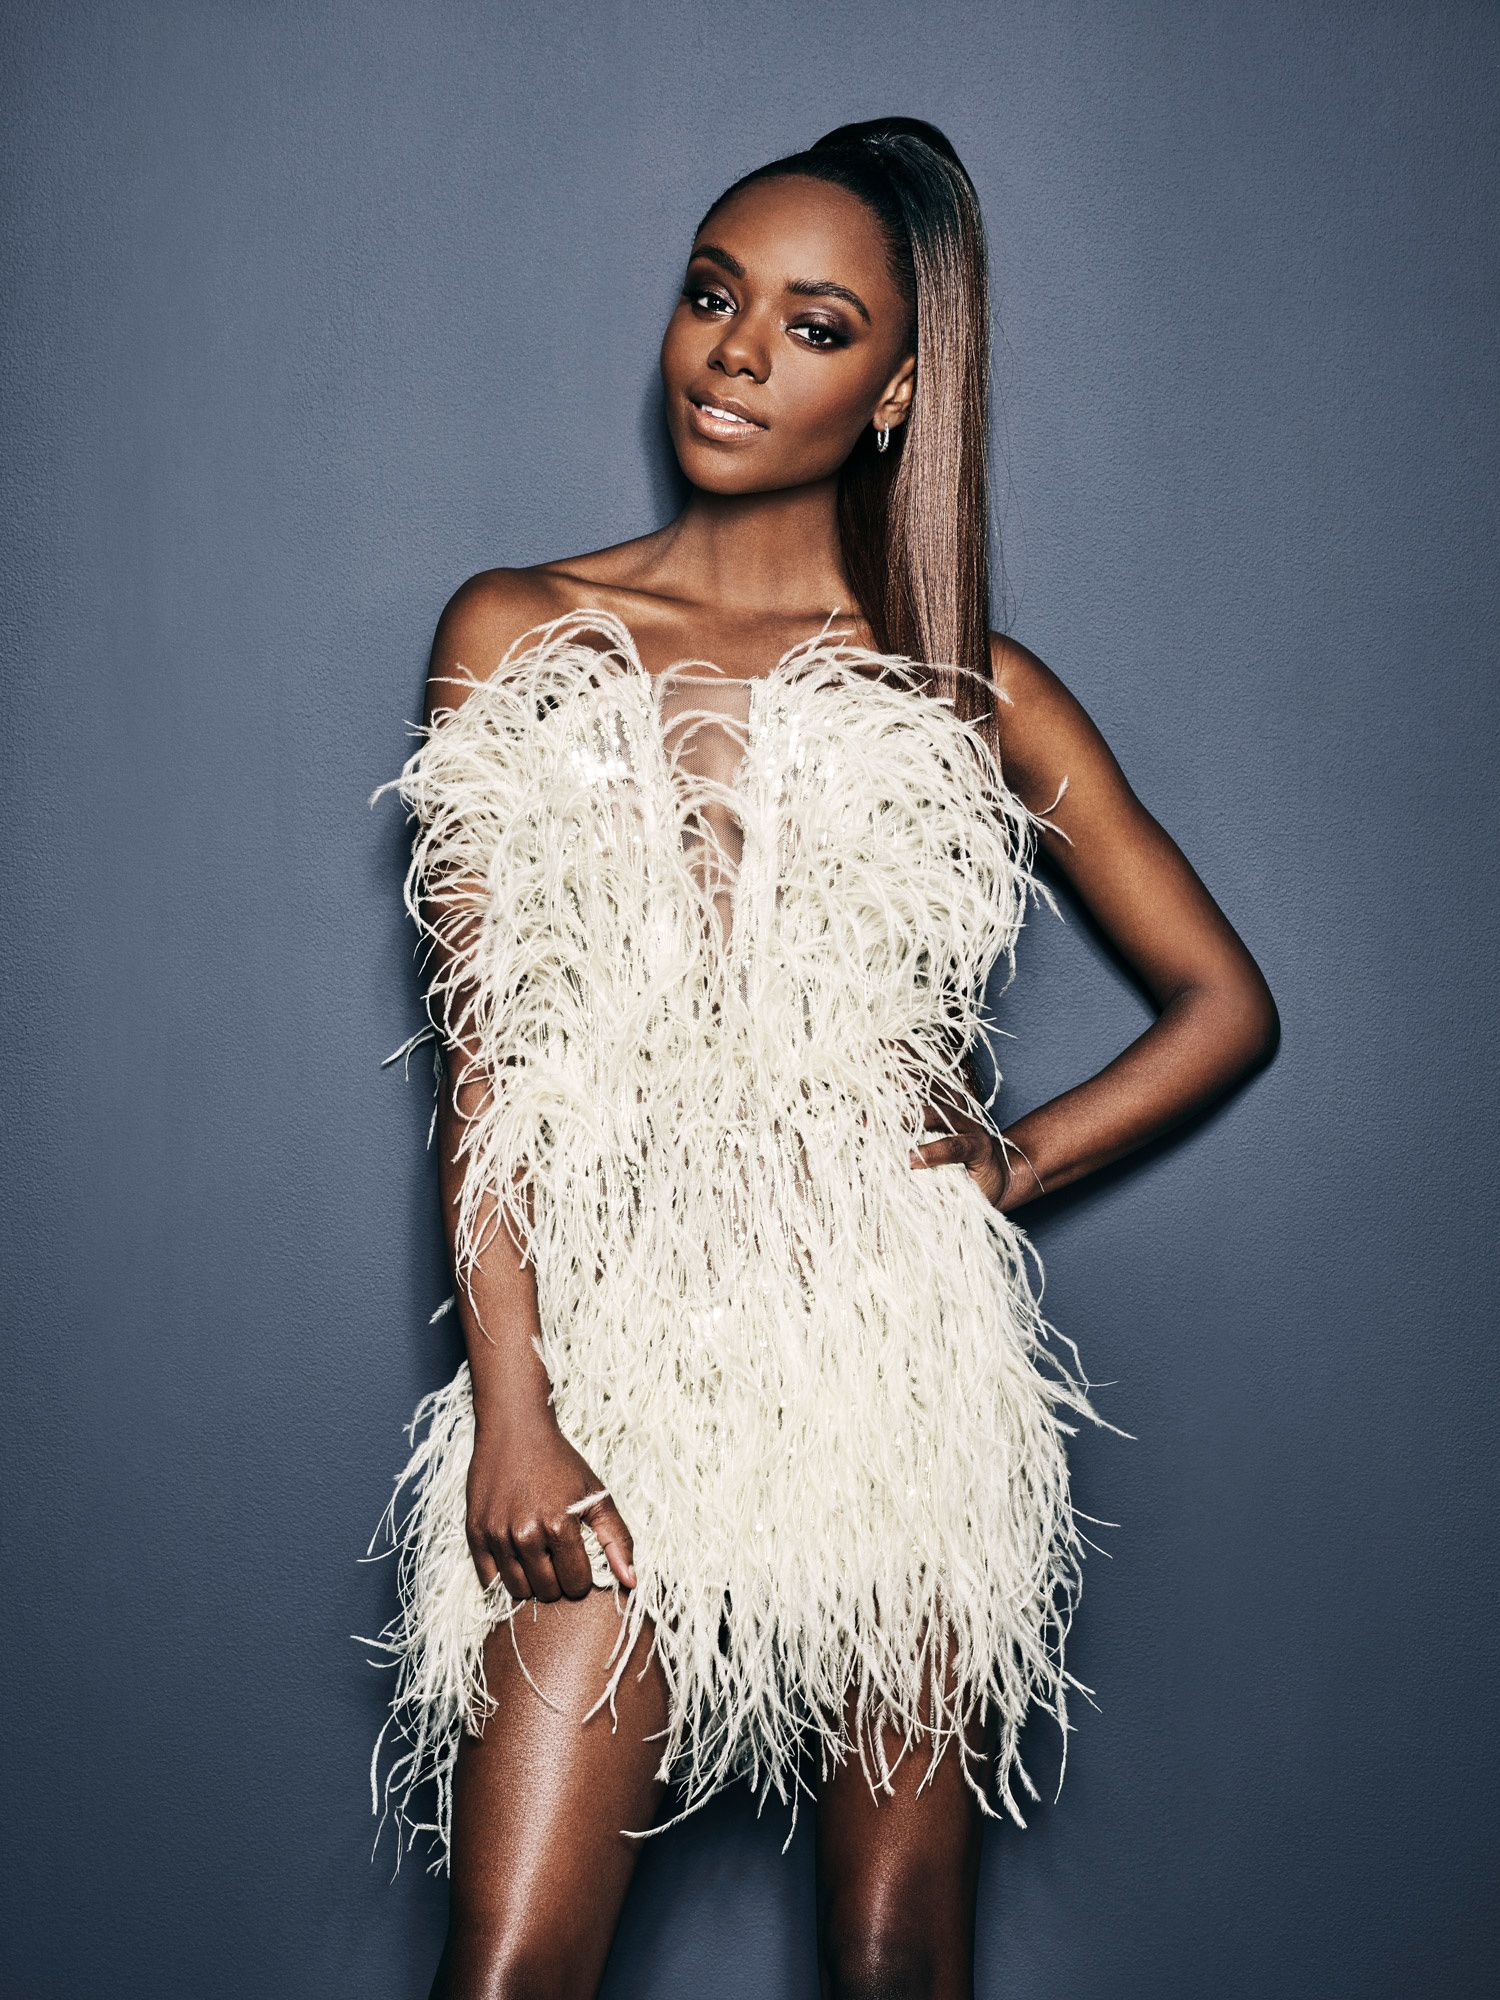 Ashleigh Murray modeling a feather dress.